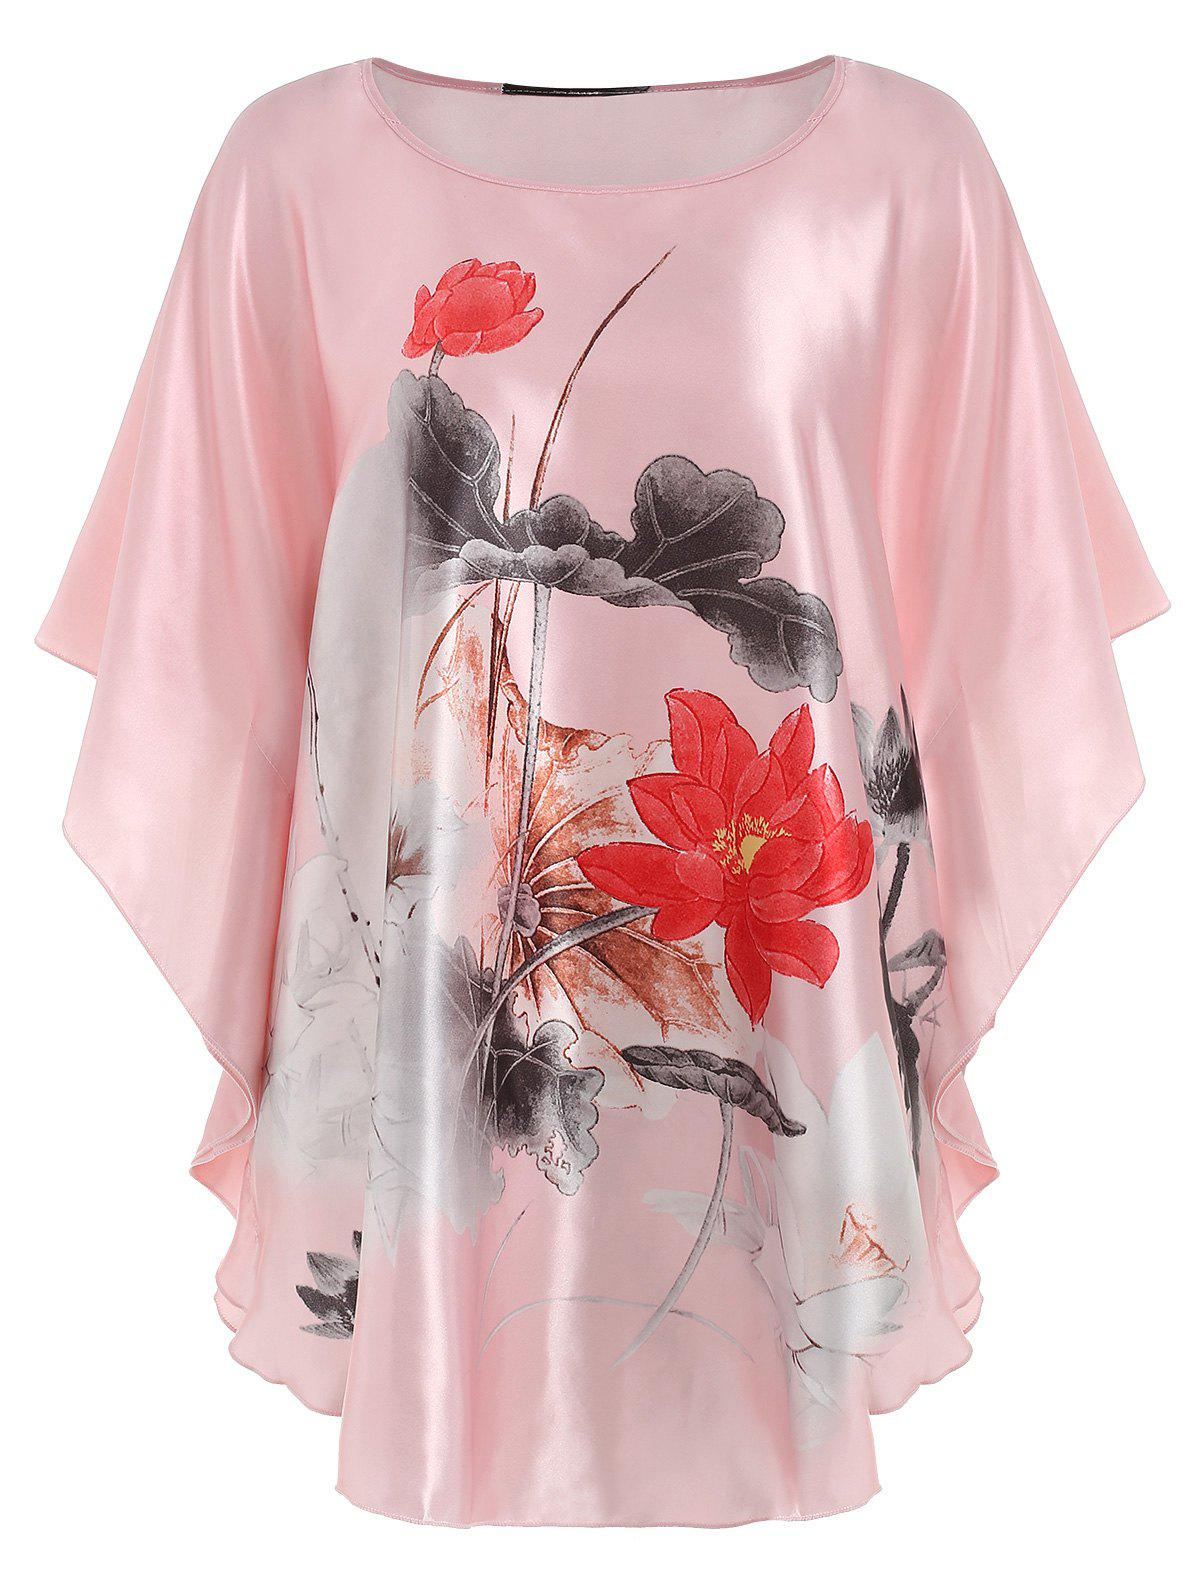 Store Satin Batwing Sleeve Ink Painting Nightdress